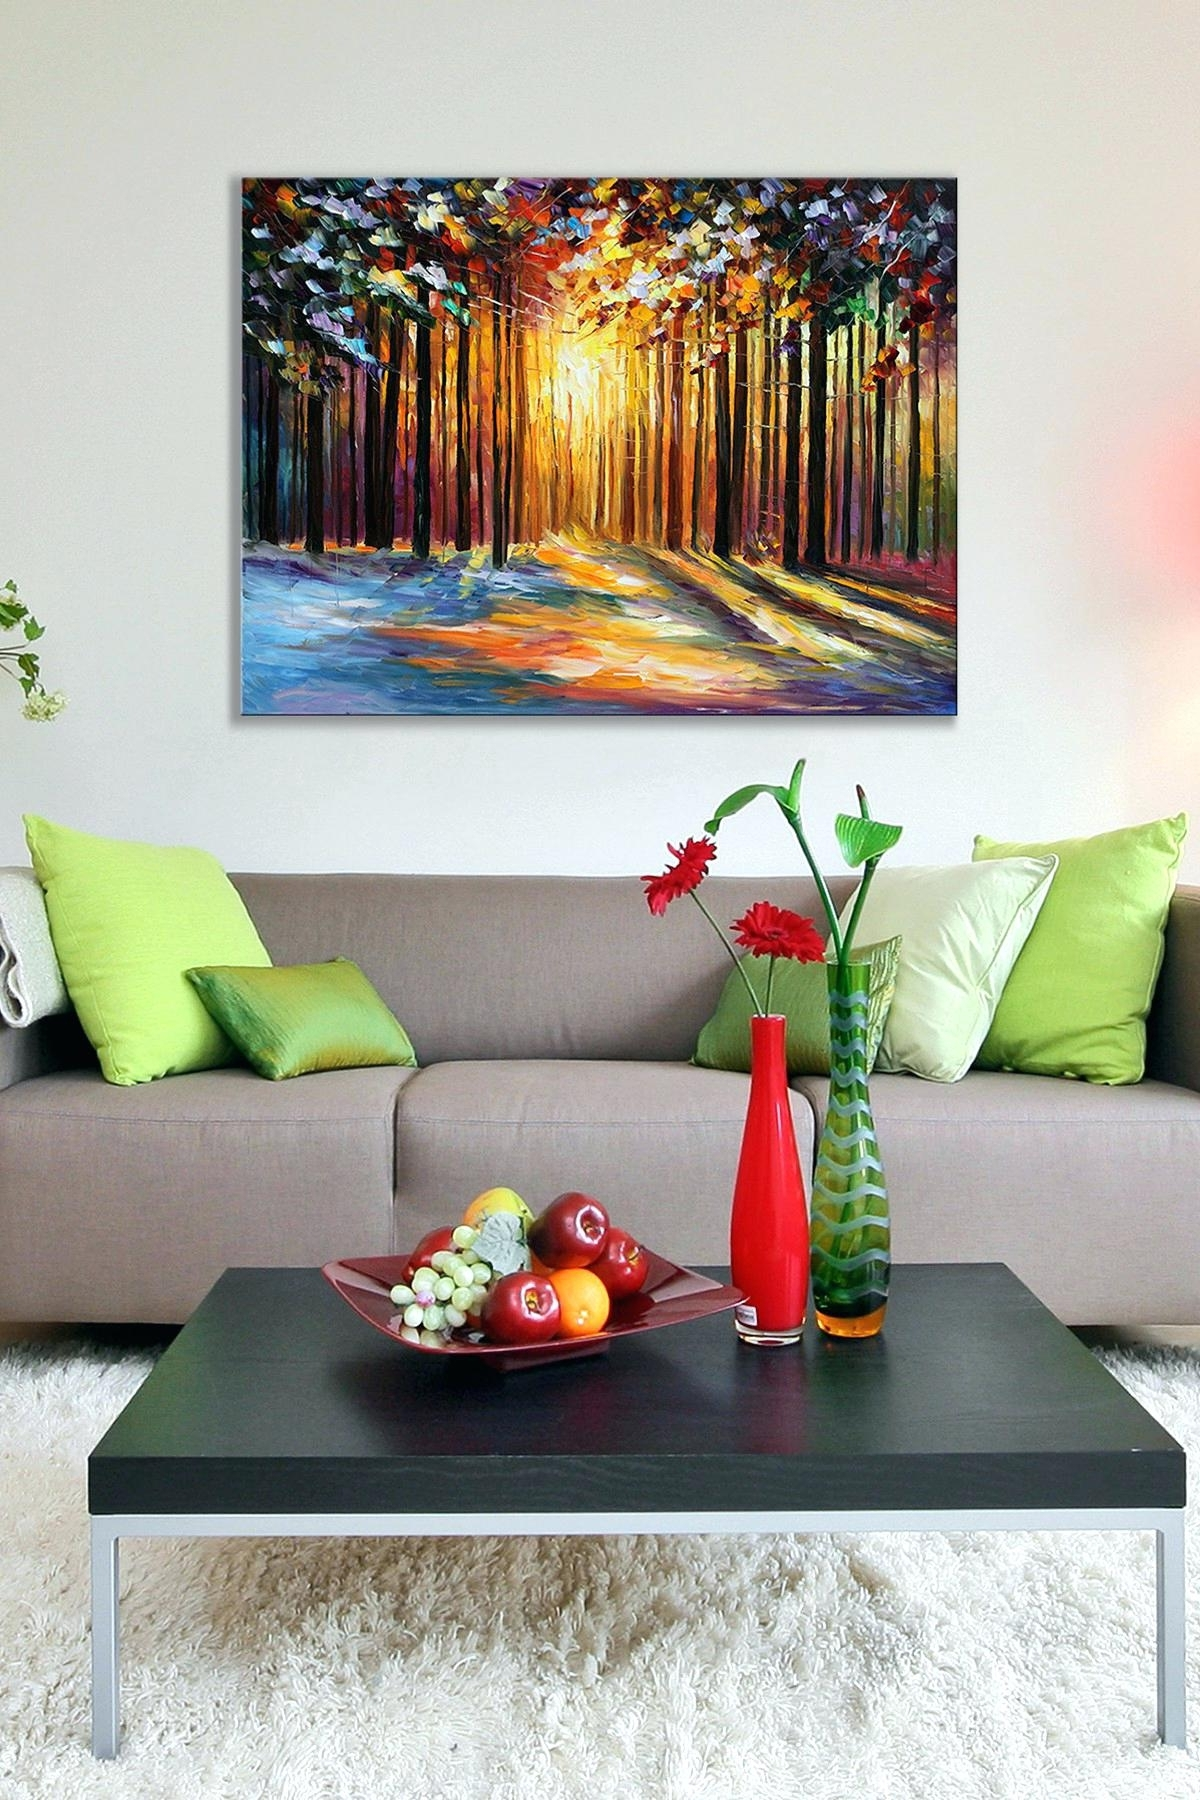 Most Popular Wall Ideas: Feng Shui Wall Art Feng Shui Wall Art Dining Room For Feng Shui Wall Art (View 12 of 15)